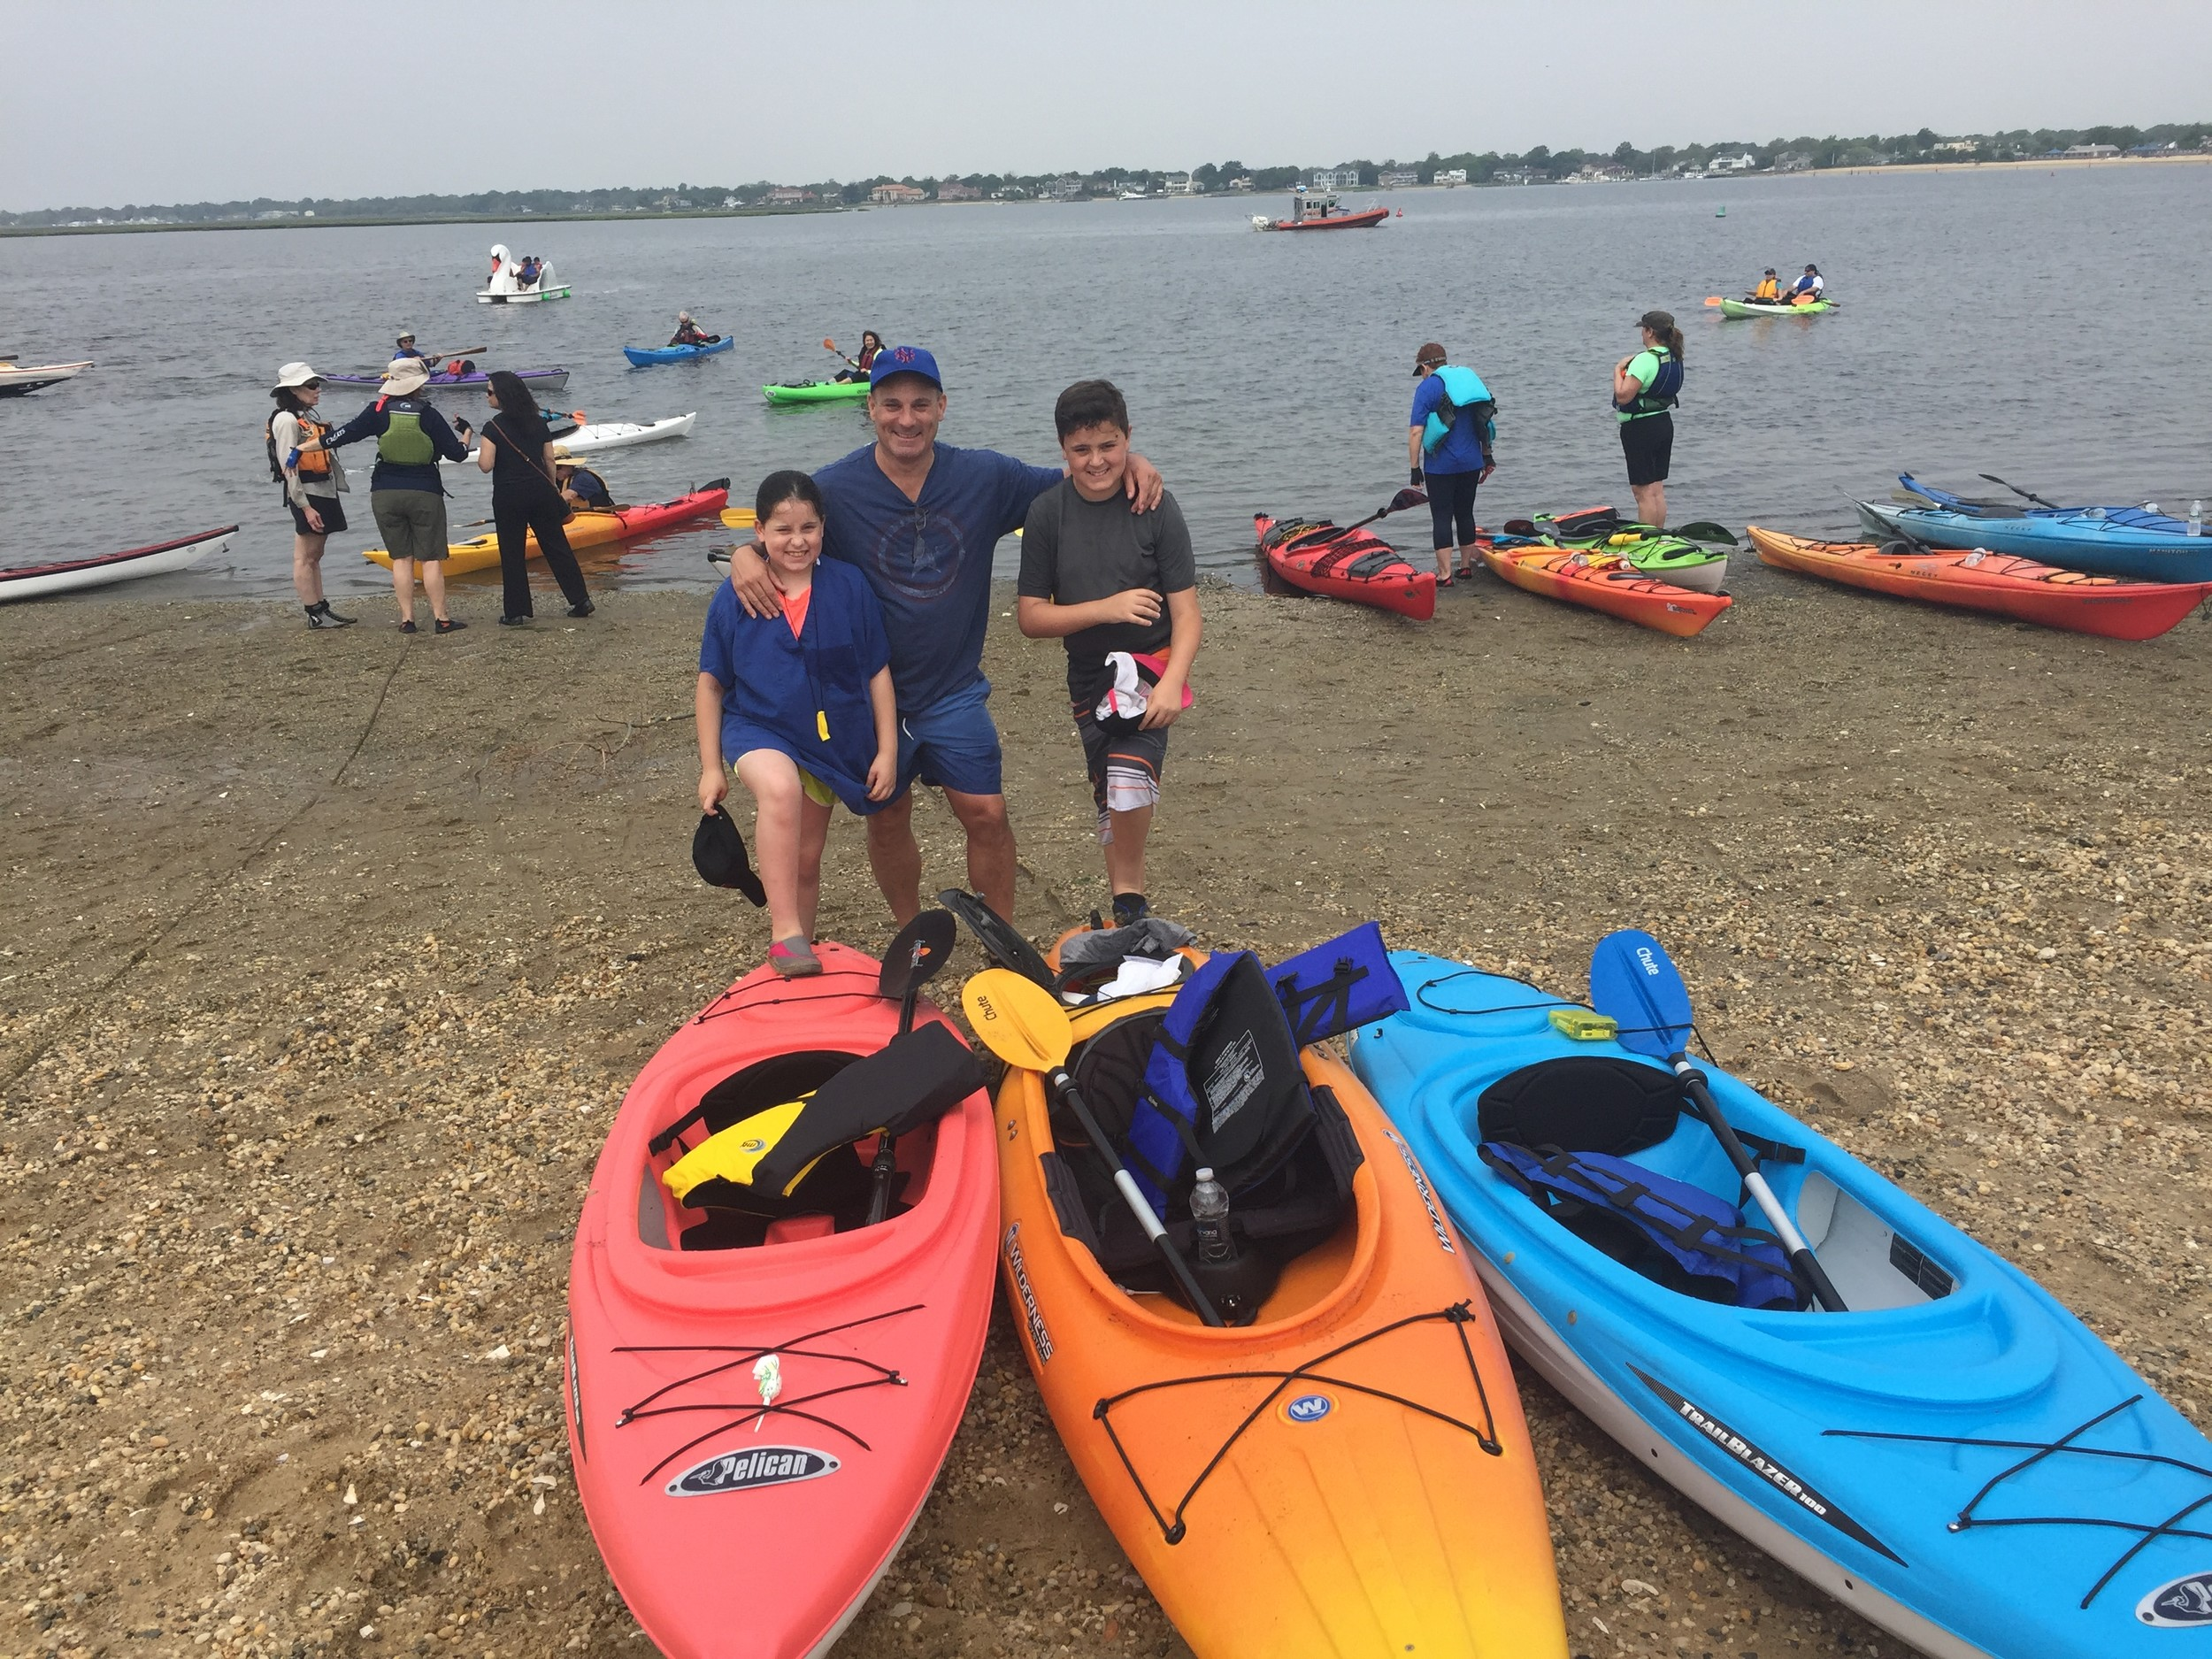 Charles Parisi, of East Rockaway, brought his children Olivia, 8, and Nicholas, 11, along for their maiden kayaking voyage